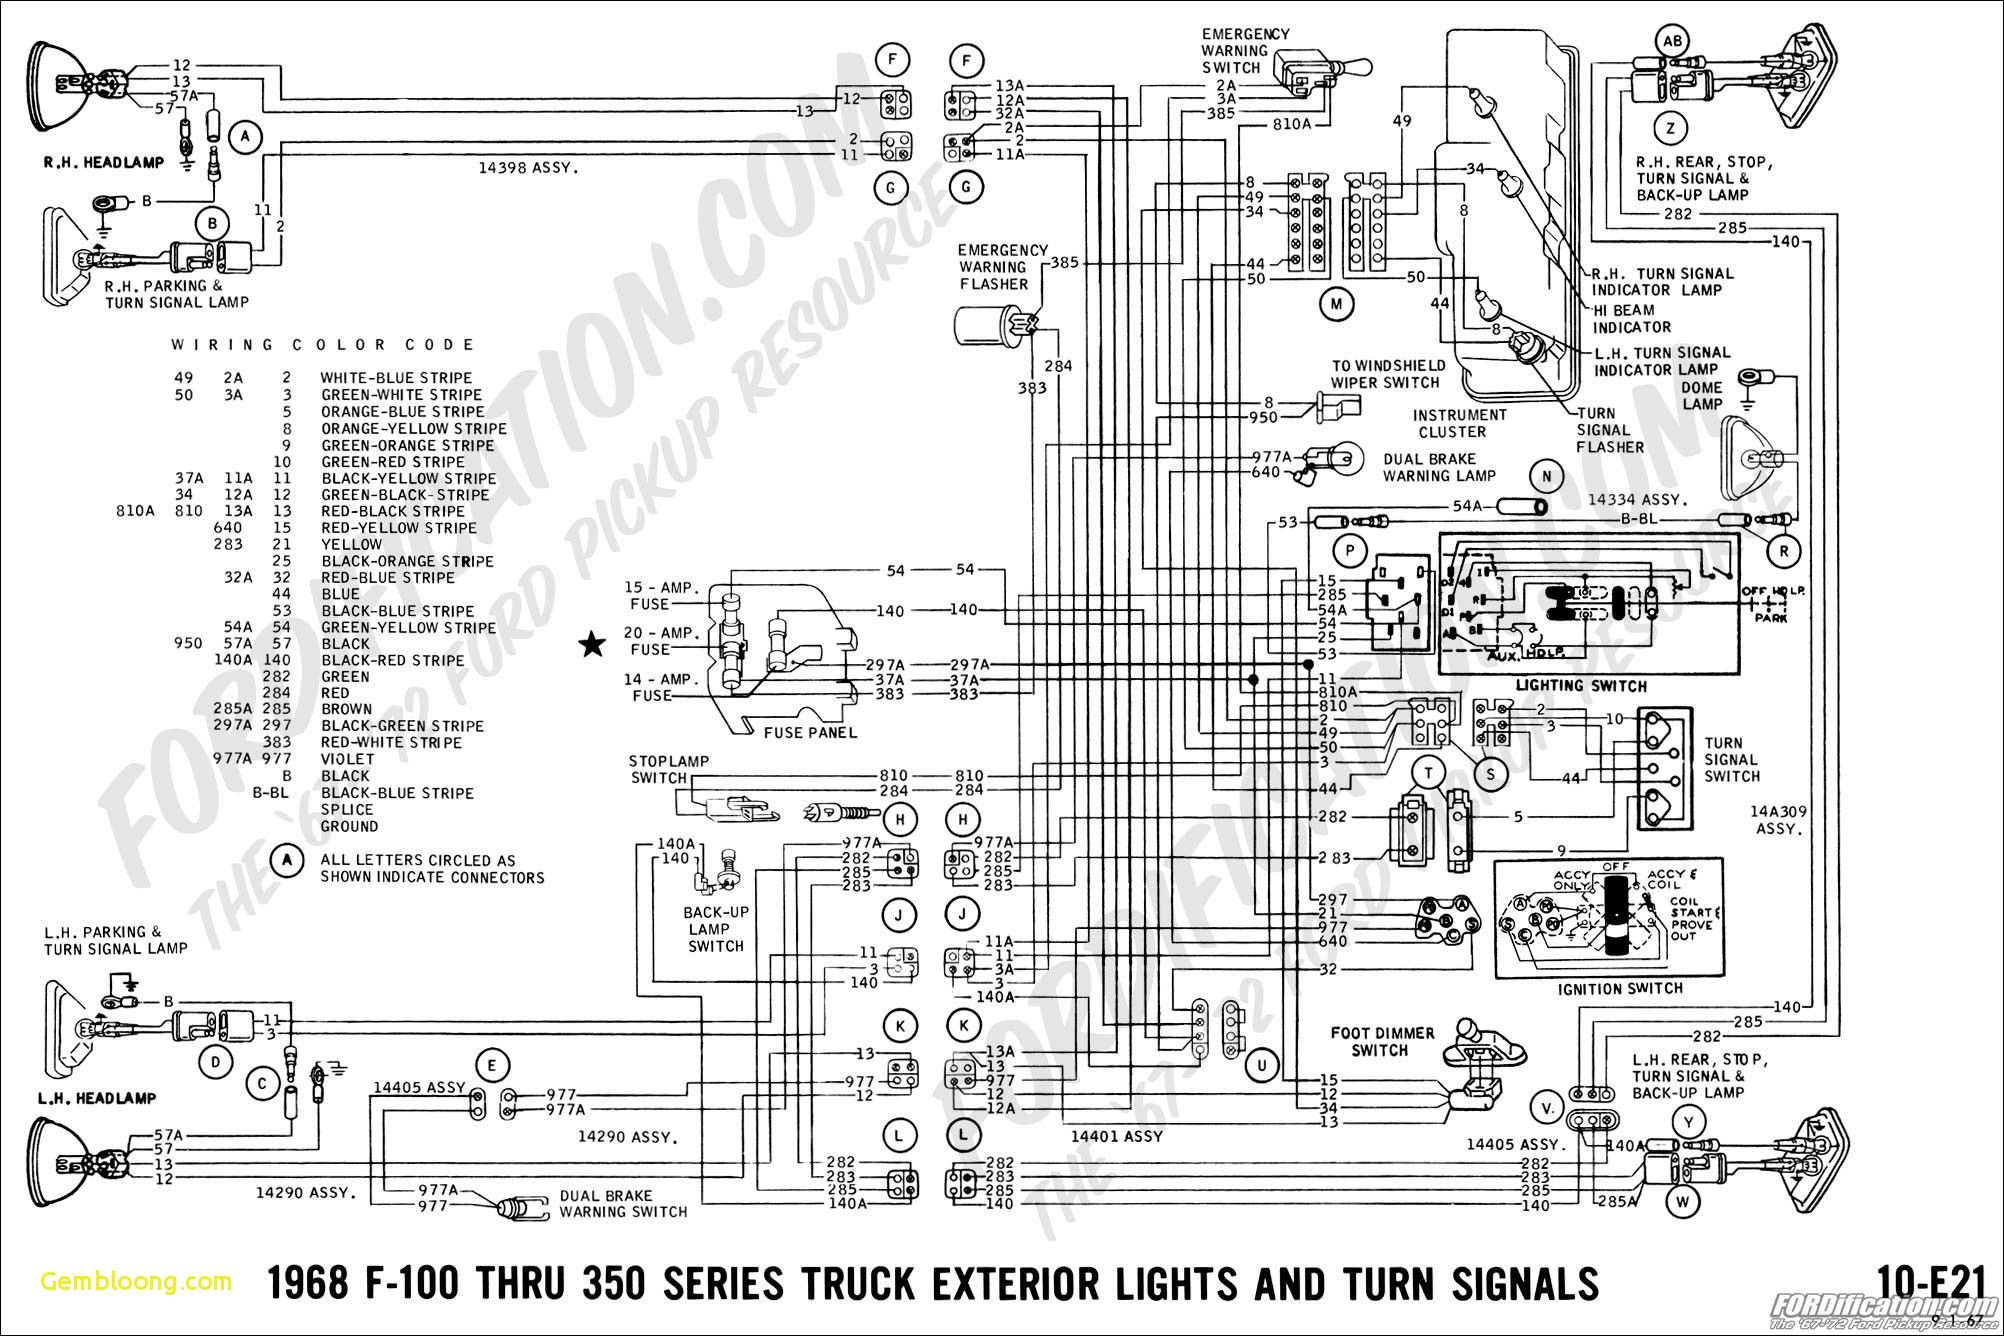 New Panasonic Inverter Wiring Diagram (With images